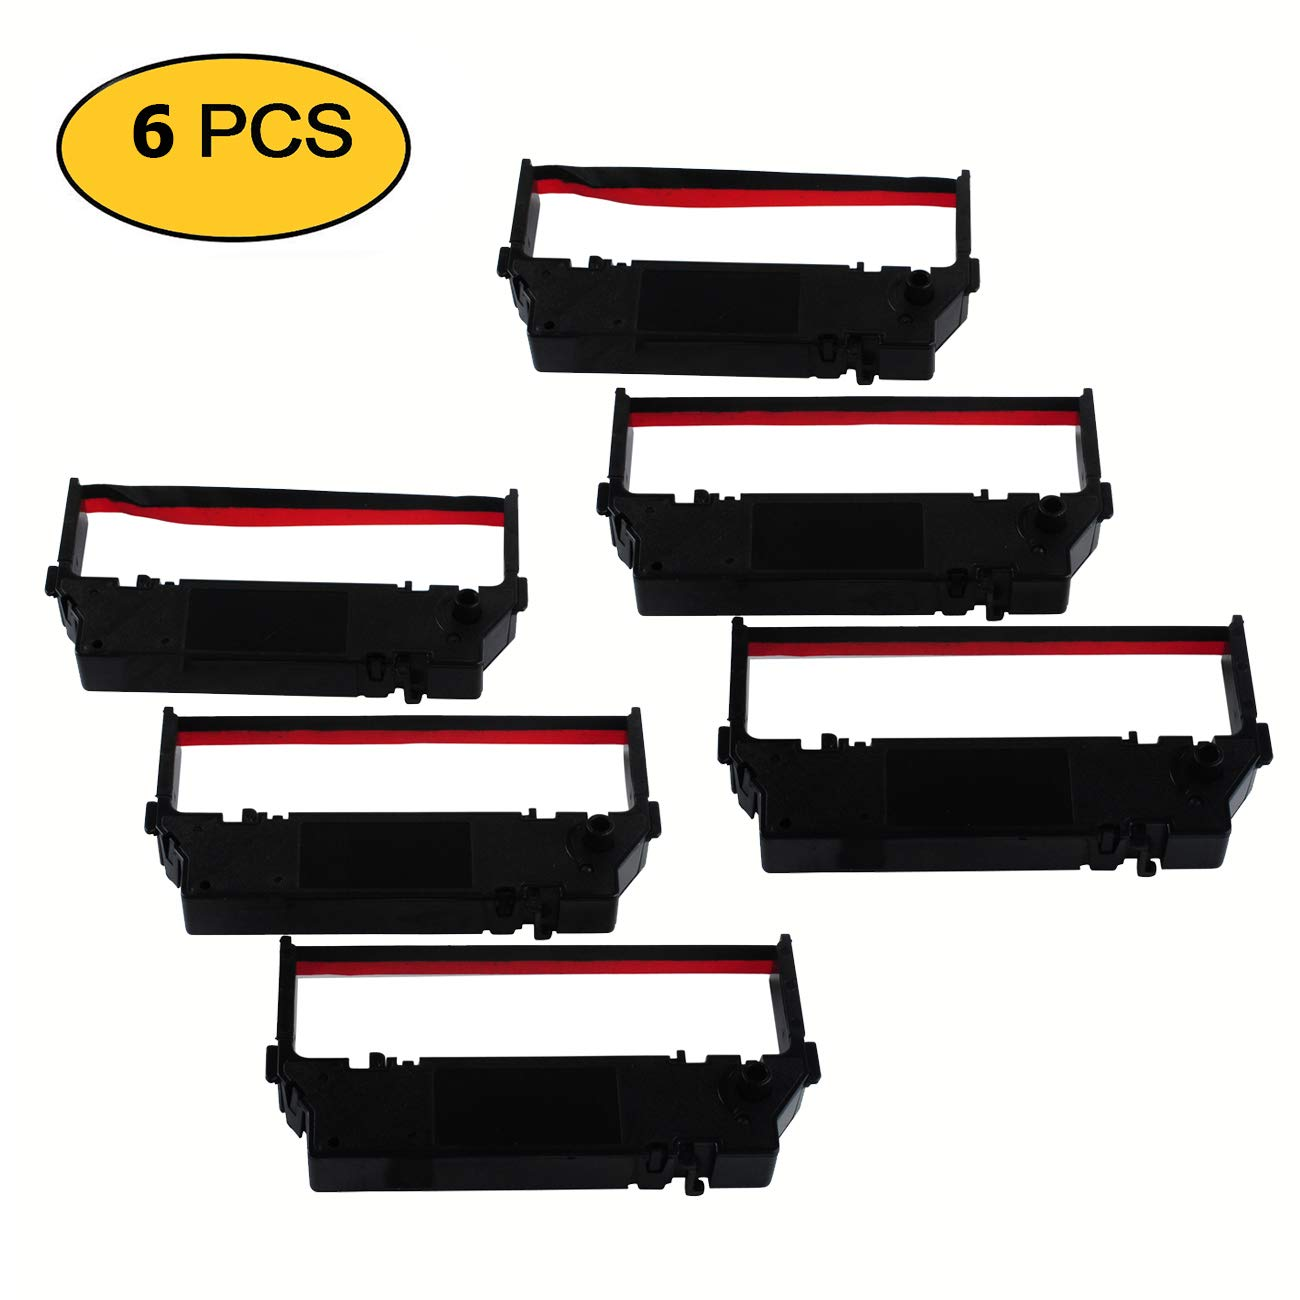 Printer Ribbon Cartridge Compatible Star SP700, Star RC700BR, RC700, SP712, SP717, SP742, SP747, Black/Red Replacement, Pack of 6 Boxs Poweka